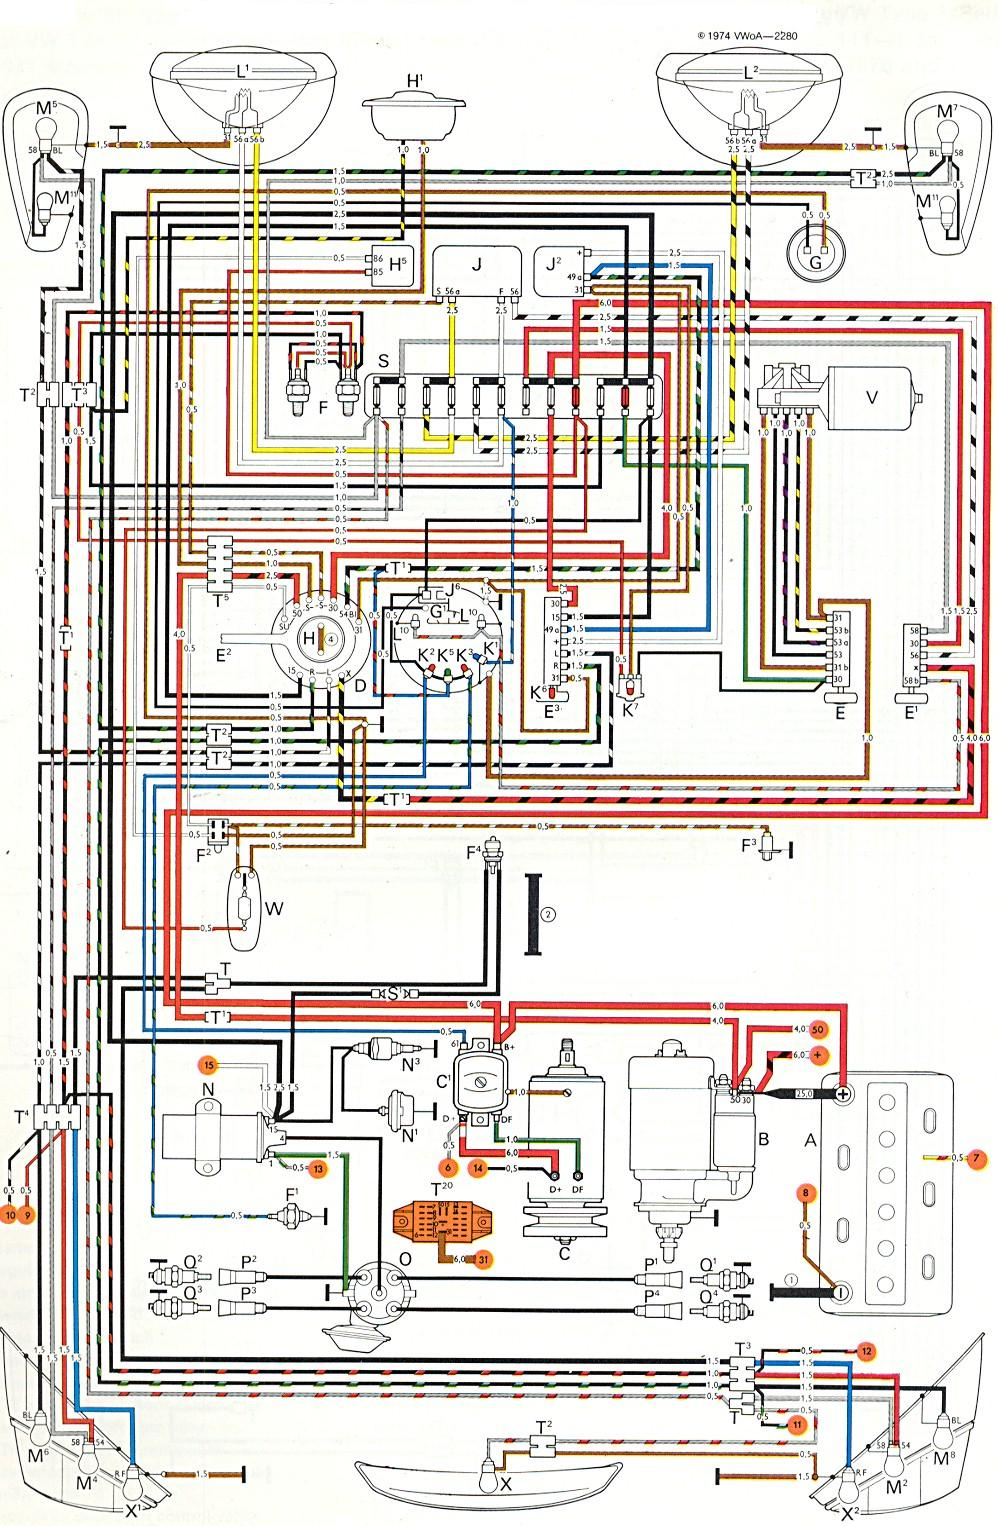 1958 vw bug wiring diagram wiring schematic data 2001 volkswagen beetle wiring diagram 1976 vw beetle [ 999 x 1526 Pixel ]